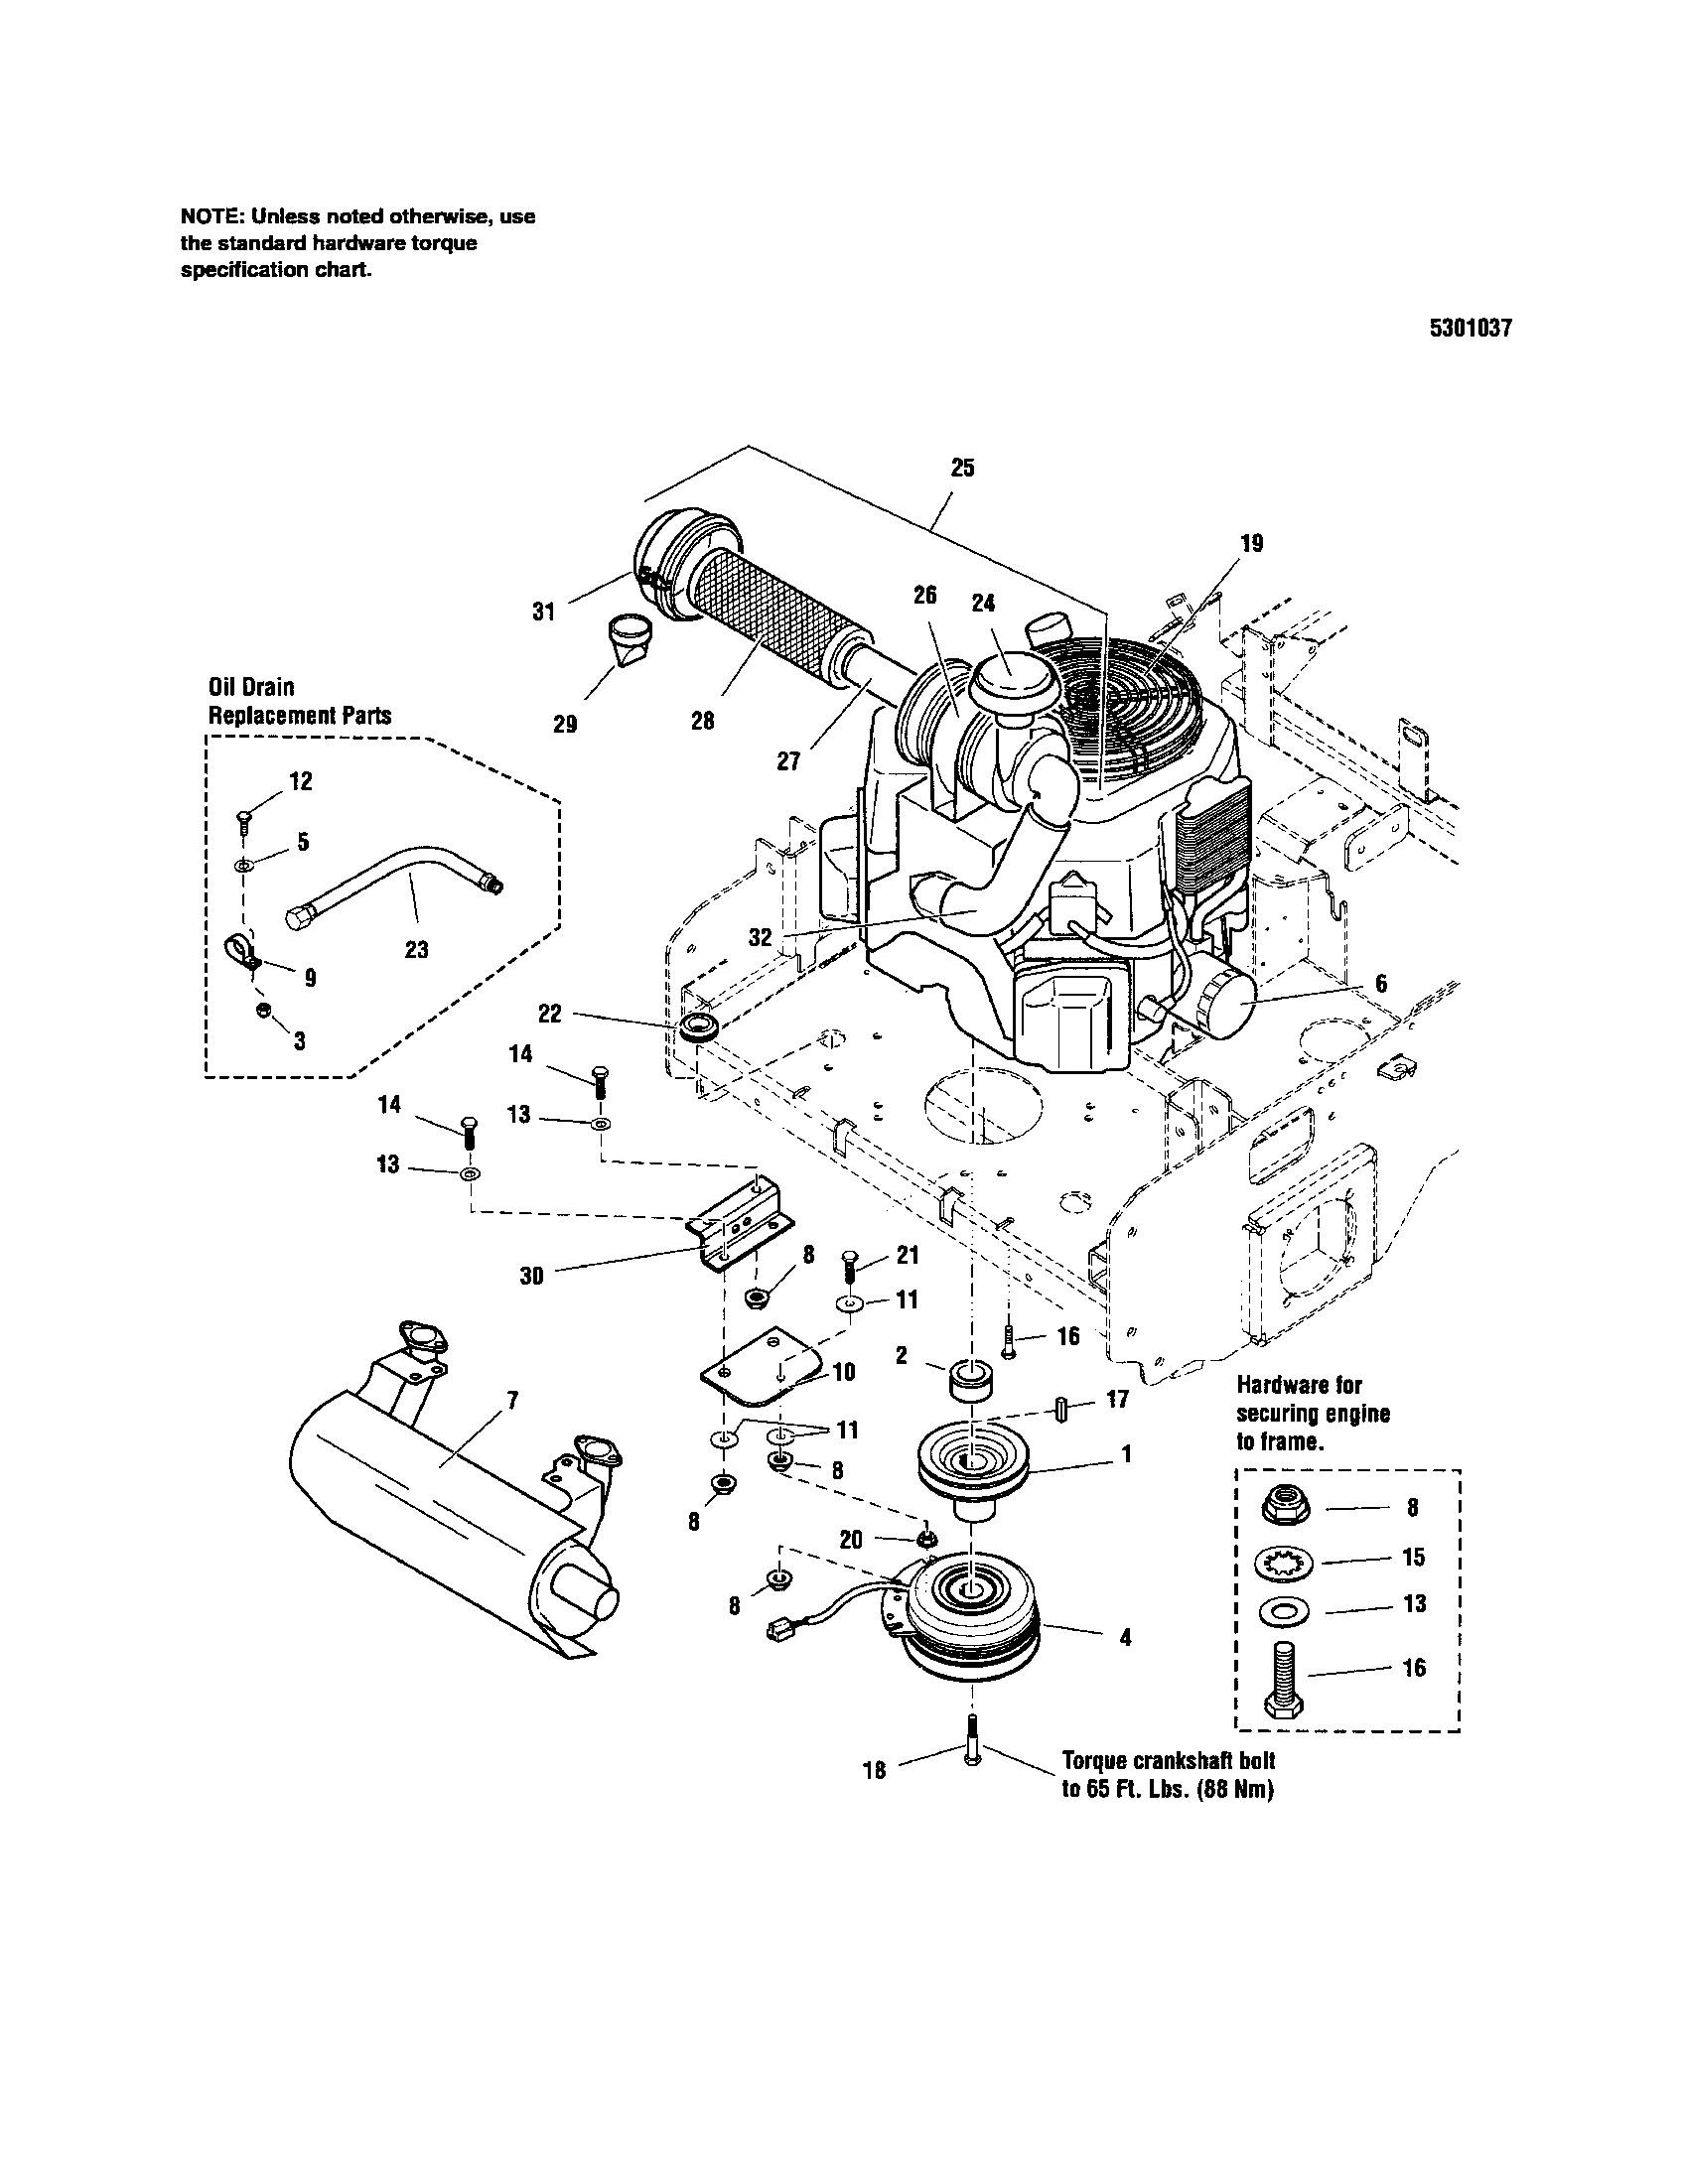 Kohler Mand 20 Wiring Diagram Not Lossing Schematic Courage Command Rh Wiringdiagram Design Engine Electrical Manual